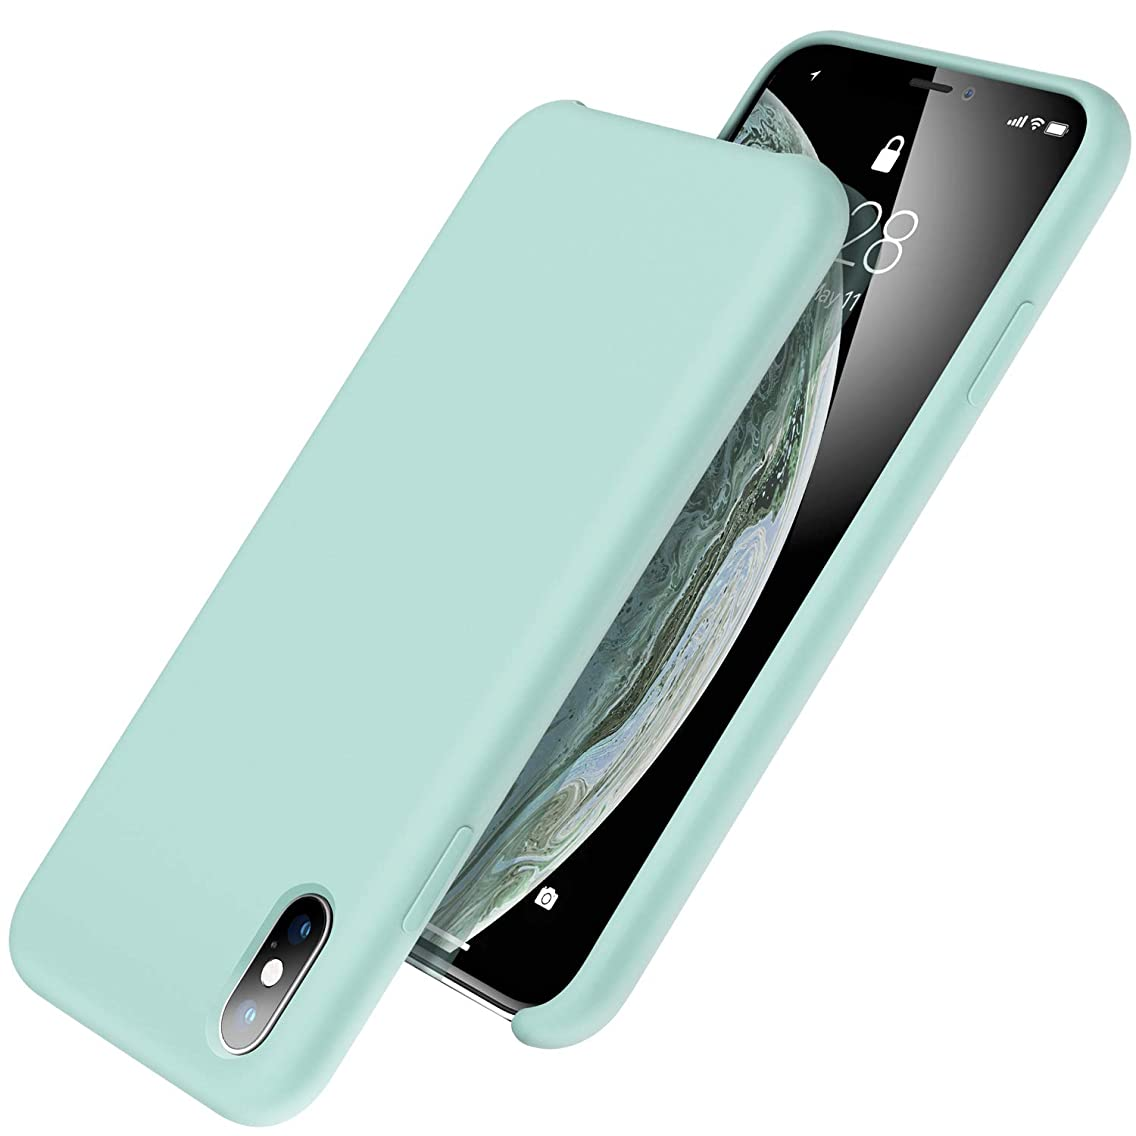 UGT iPhone Xs Case/iPhone X Case, Liquid Silicone Case Slim Shockproof Microfiber Cloth Lining Compatible with iPhone X (2017) & iPhone Xs (2018) 5.8 inch, Mint